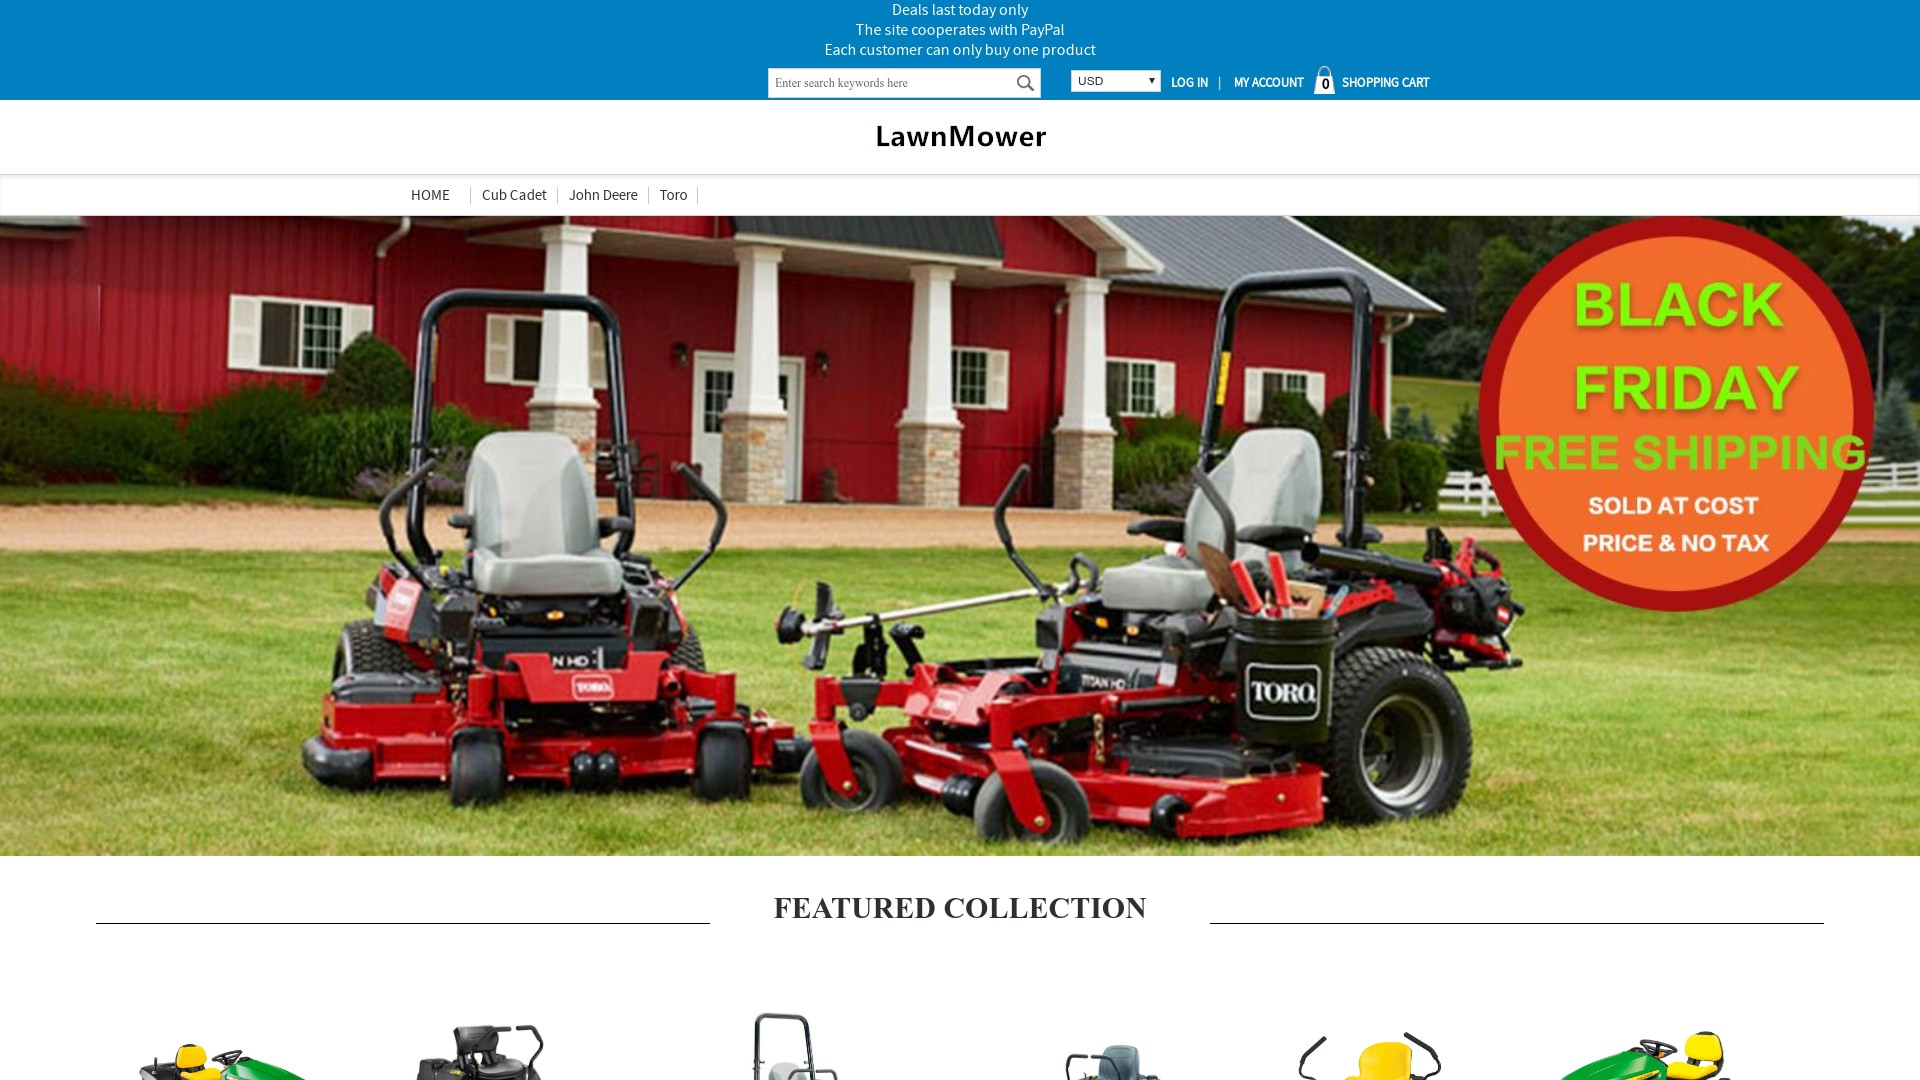 Is Nitenm.com a Scam? See the Review of the Lawnmower Store